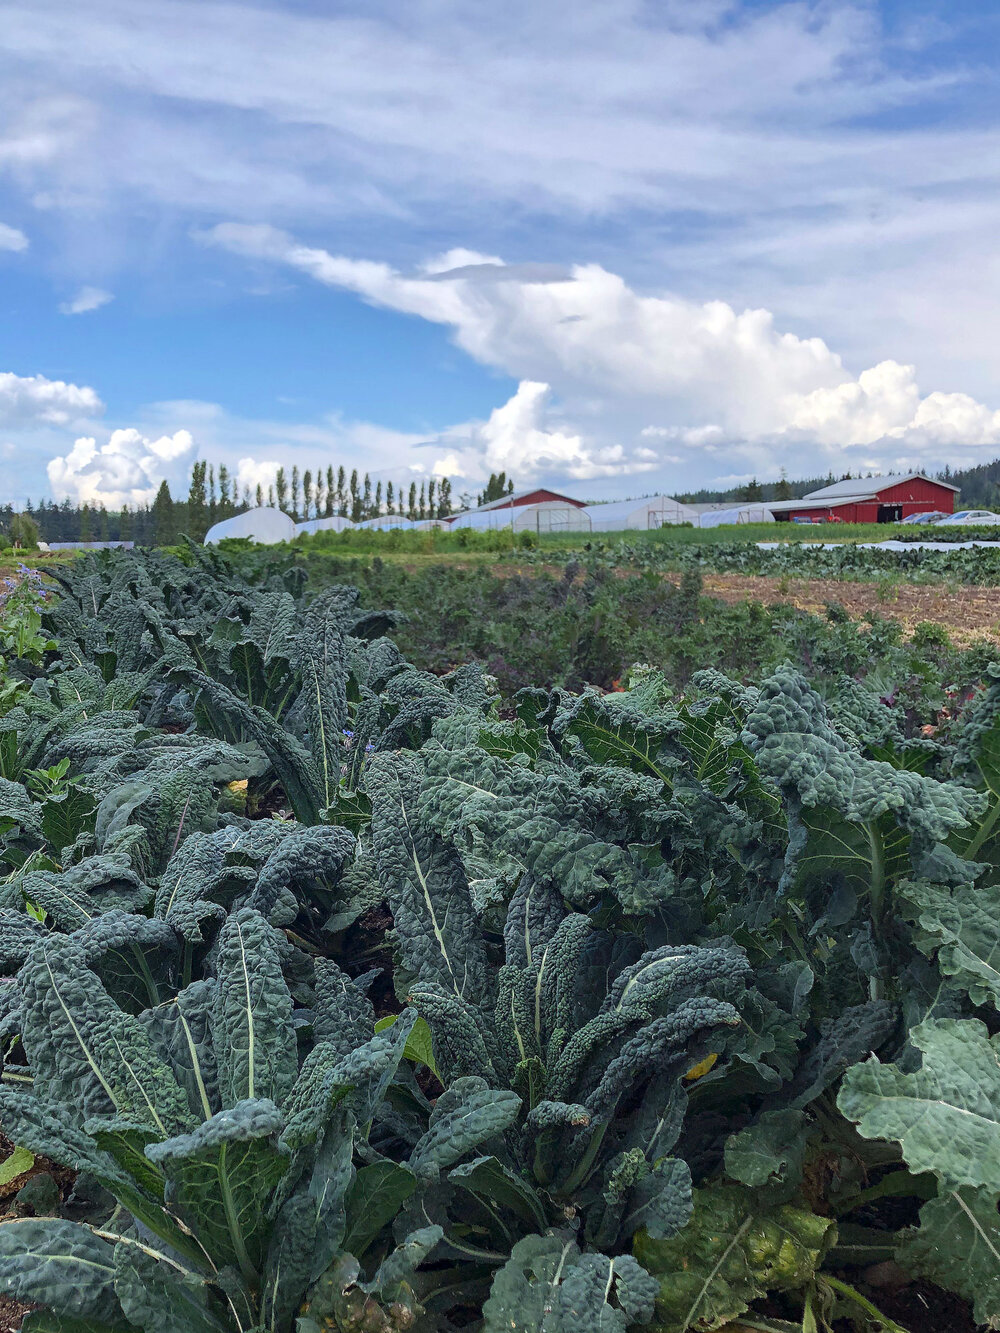 Rows of kale, including 'Lacinato' (aka dinosaur kale) seen in the foreground of the photo.